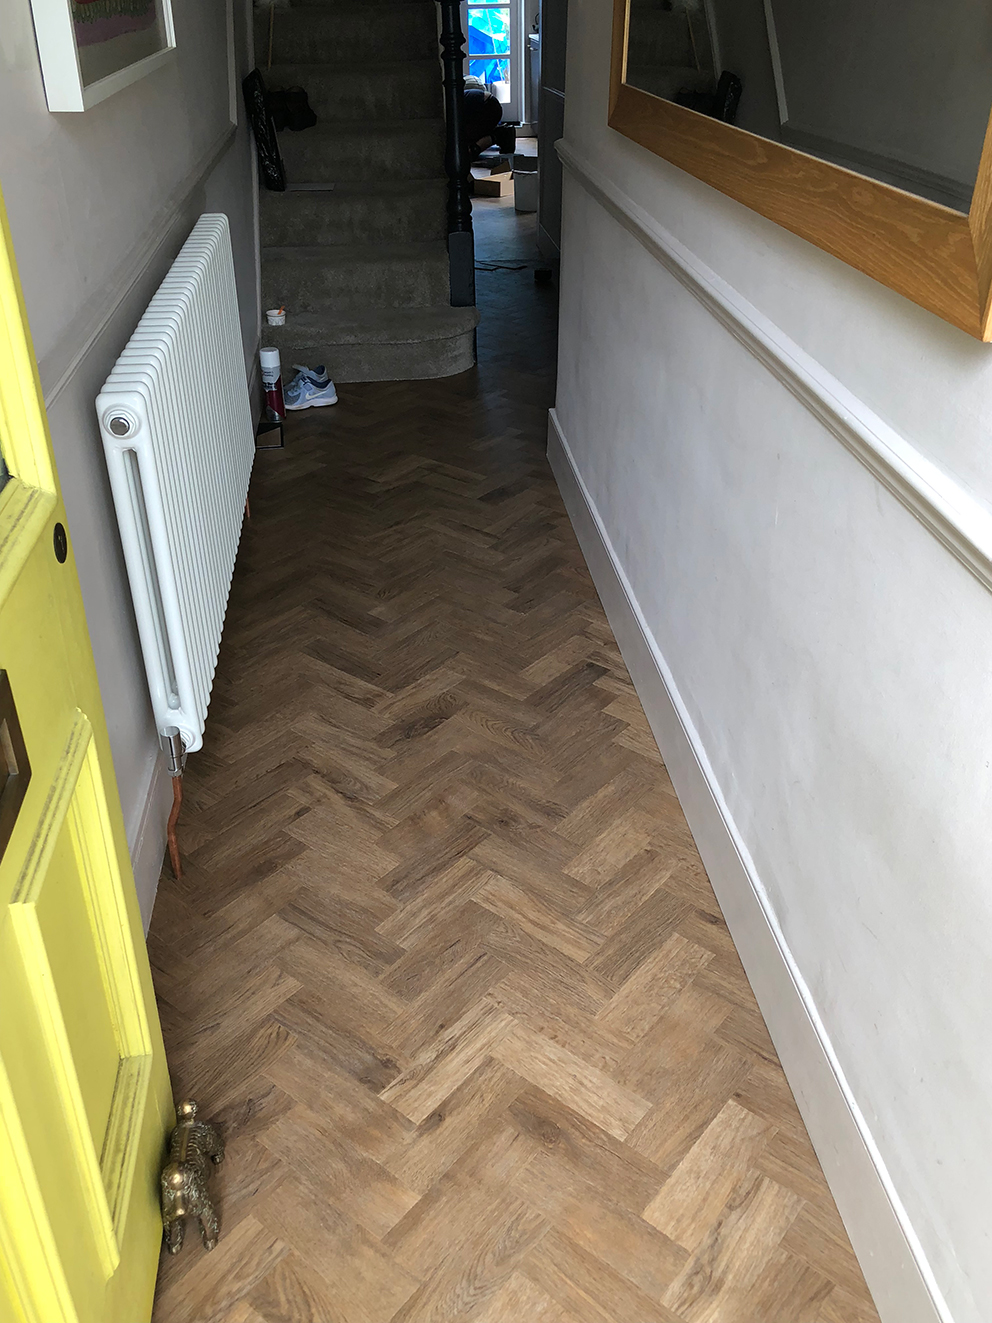 Amtico Flooring Installation AKA My Dream Parquet Floor - French For Pineapple Blog